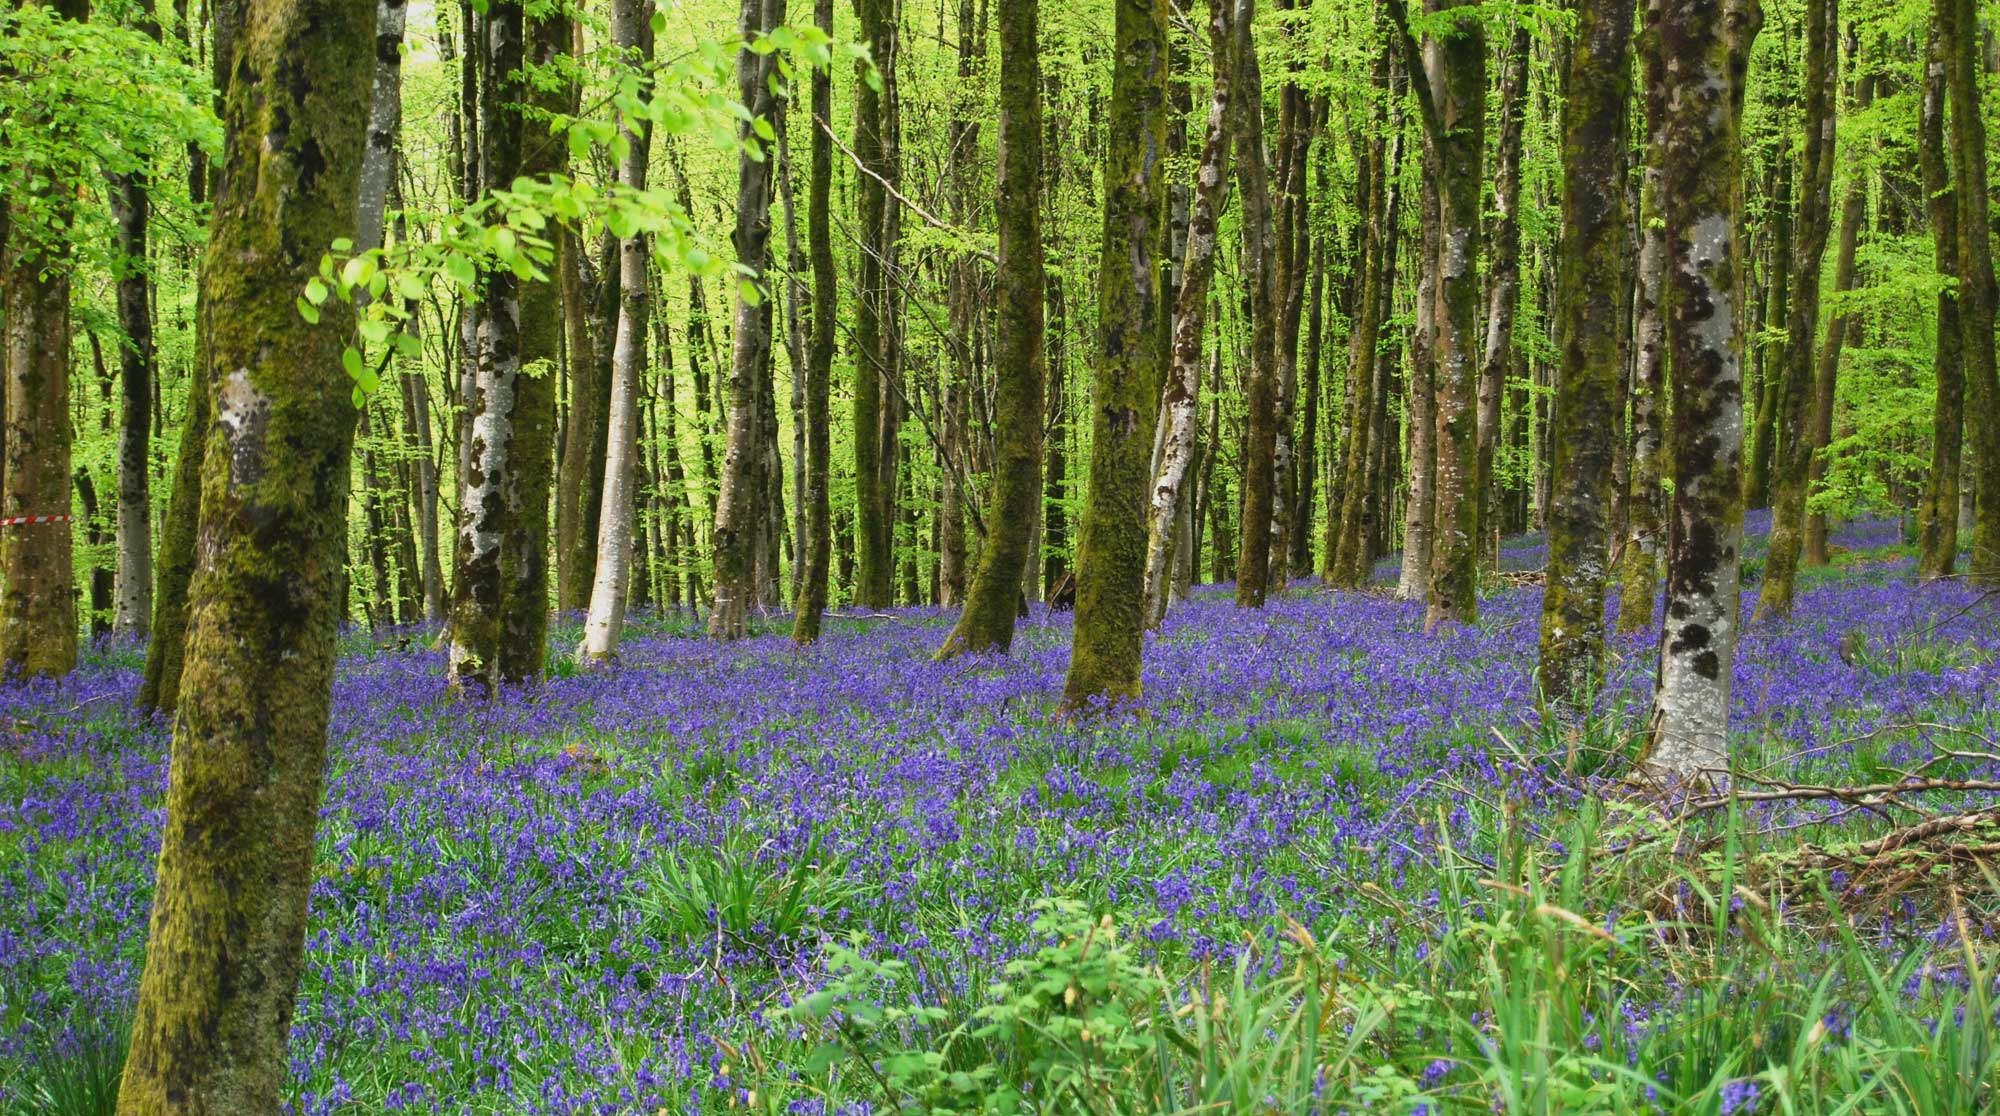 foraged-east-bysshe-cross-country-course-bluebells-slide-main